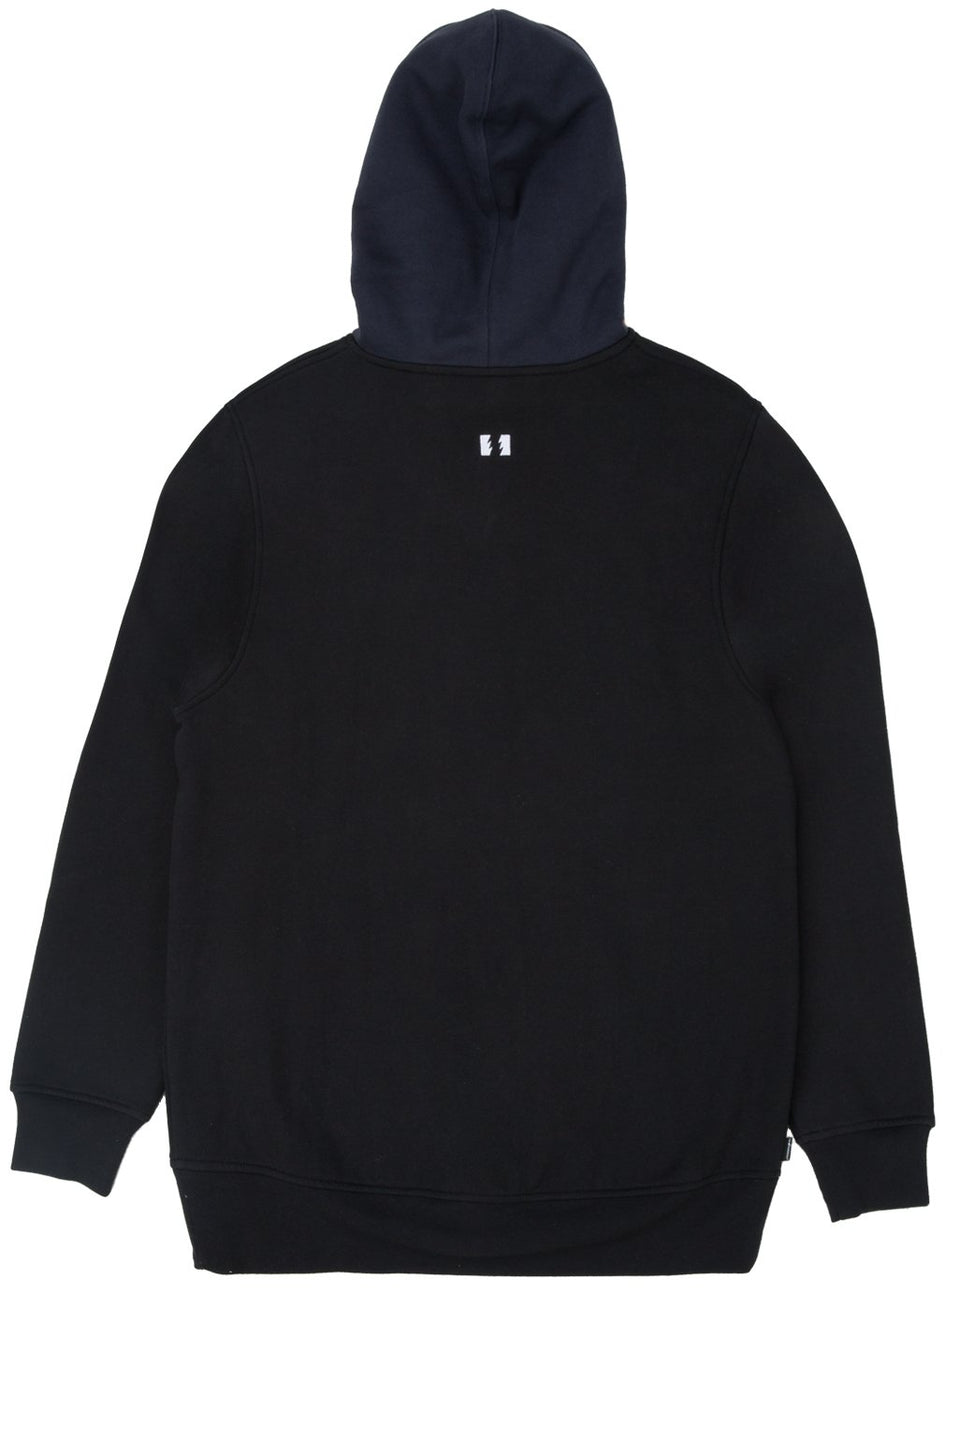 Bower Pullover Hoodie